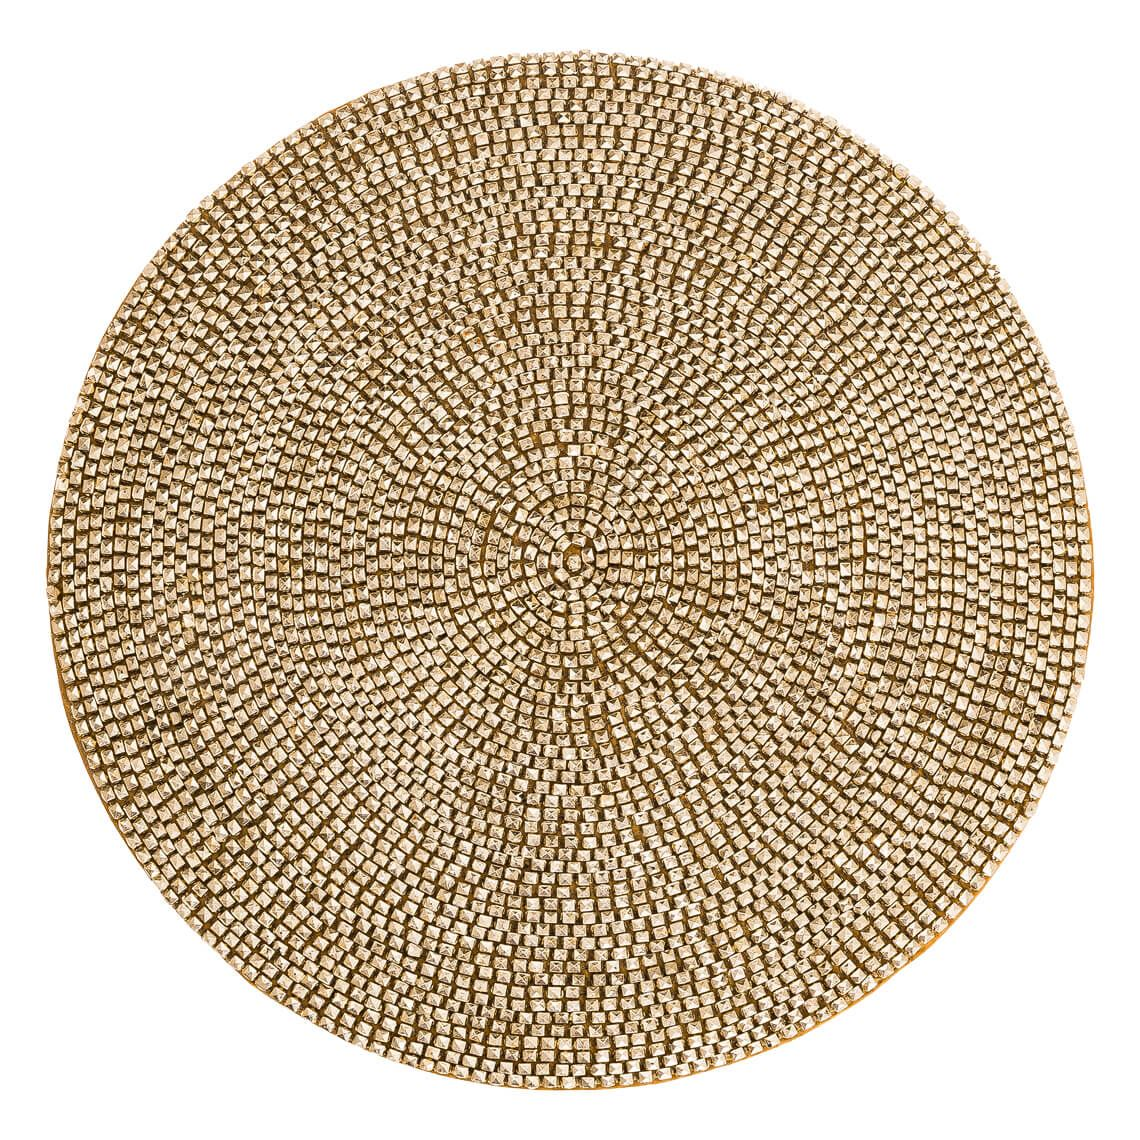 Eldora Placemat Size W 30cm x D 30cm x H 1cm in Gold Bead/Satin/Board Freedom by Freedom, a Placemats for sale on Style Sourcebook